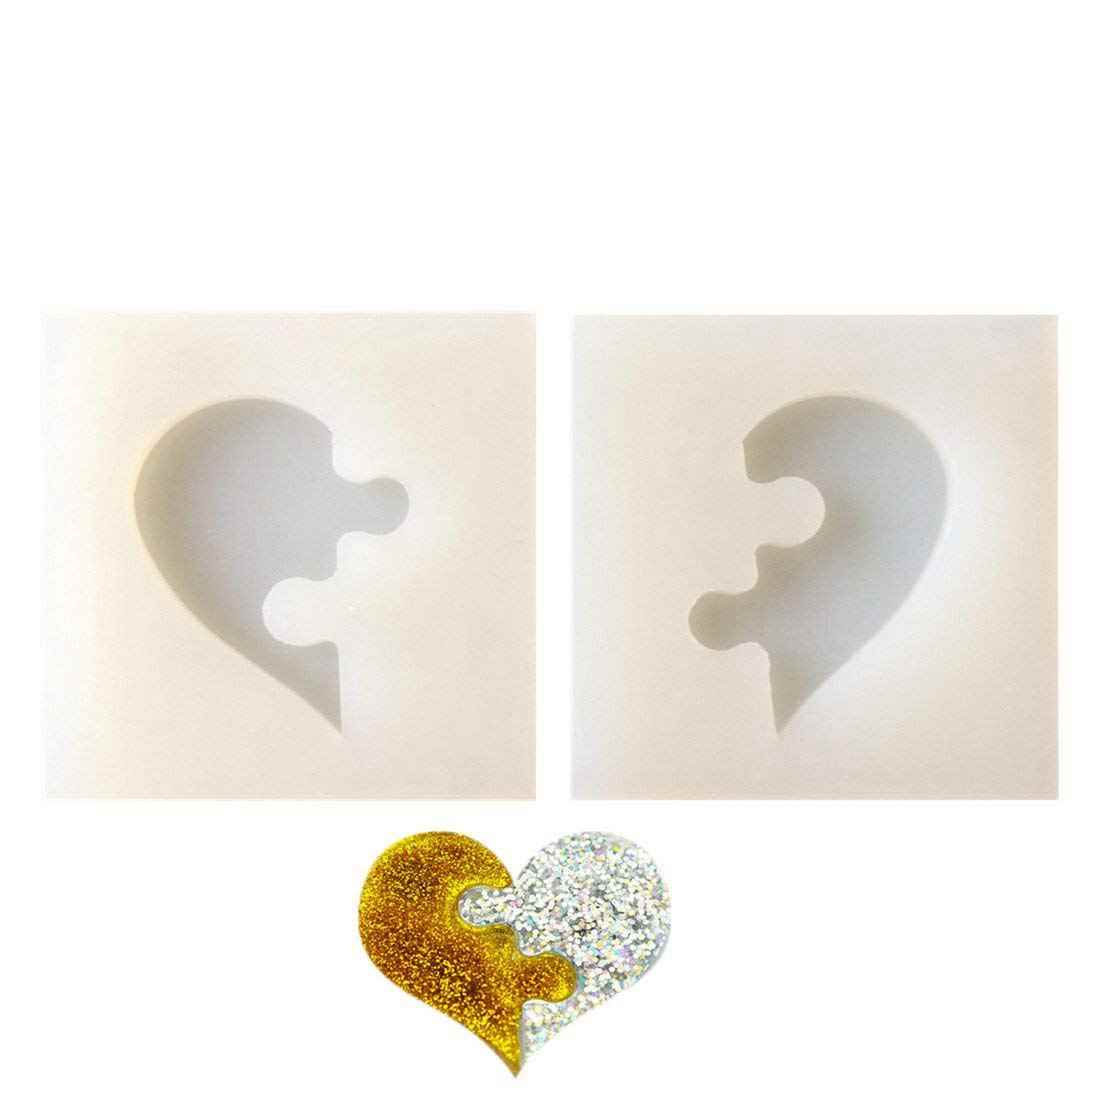 2 pcs/set Heart-shaped Puzzle Jigsaw Jewelry Silicone Mold with Hole for Polymer Clay,Crafting, Resin Epoxy,Pendant Earrings M